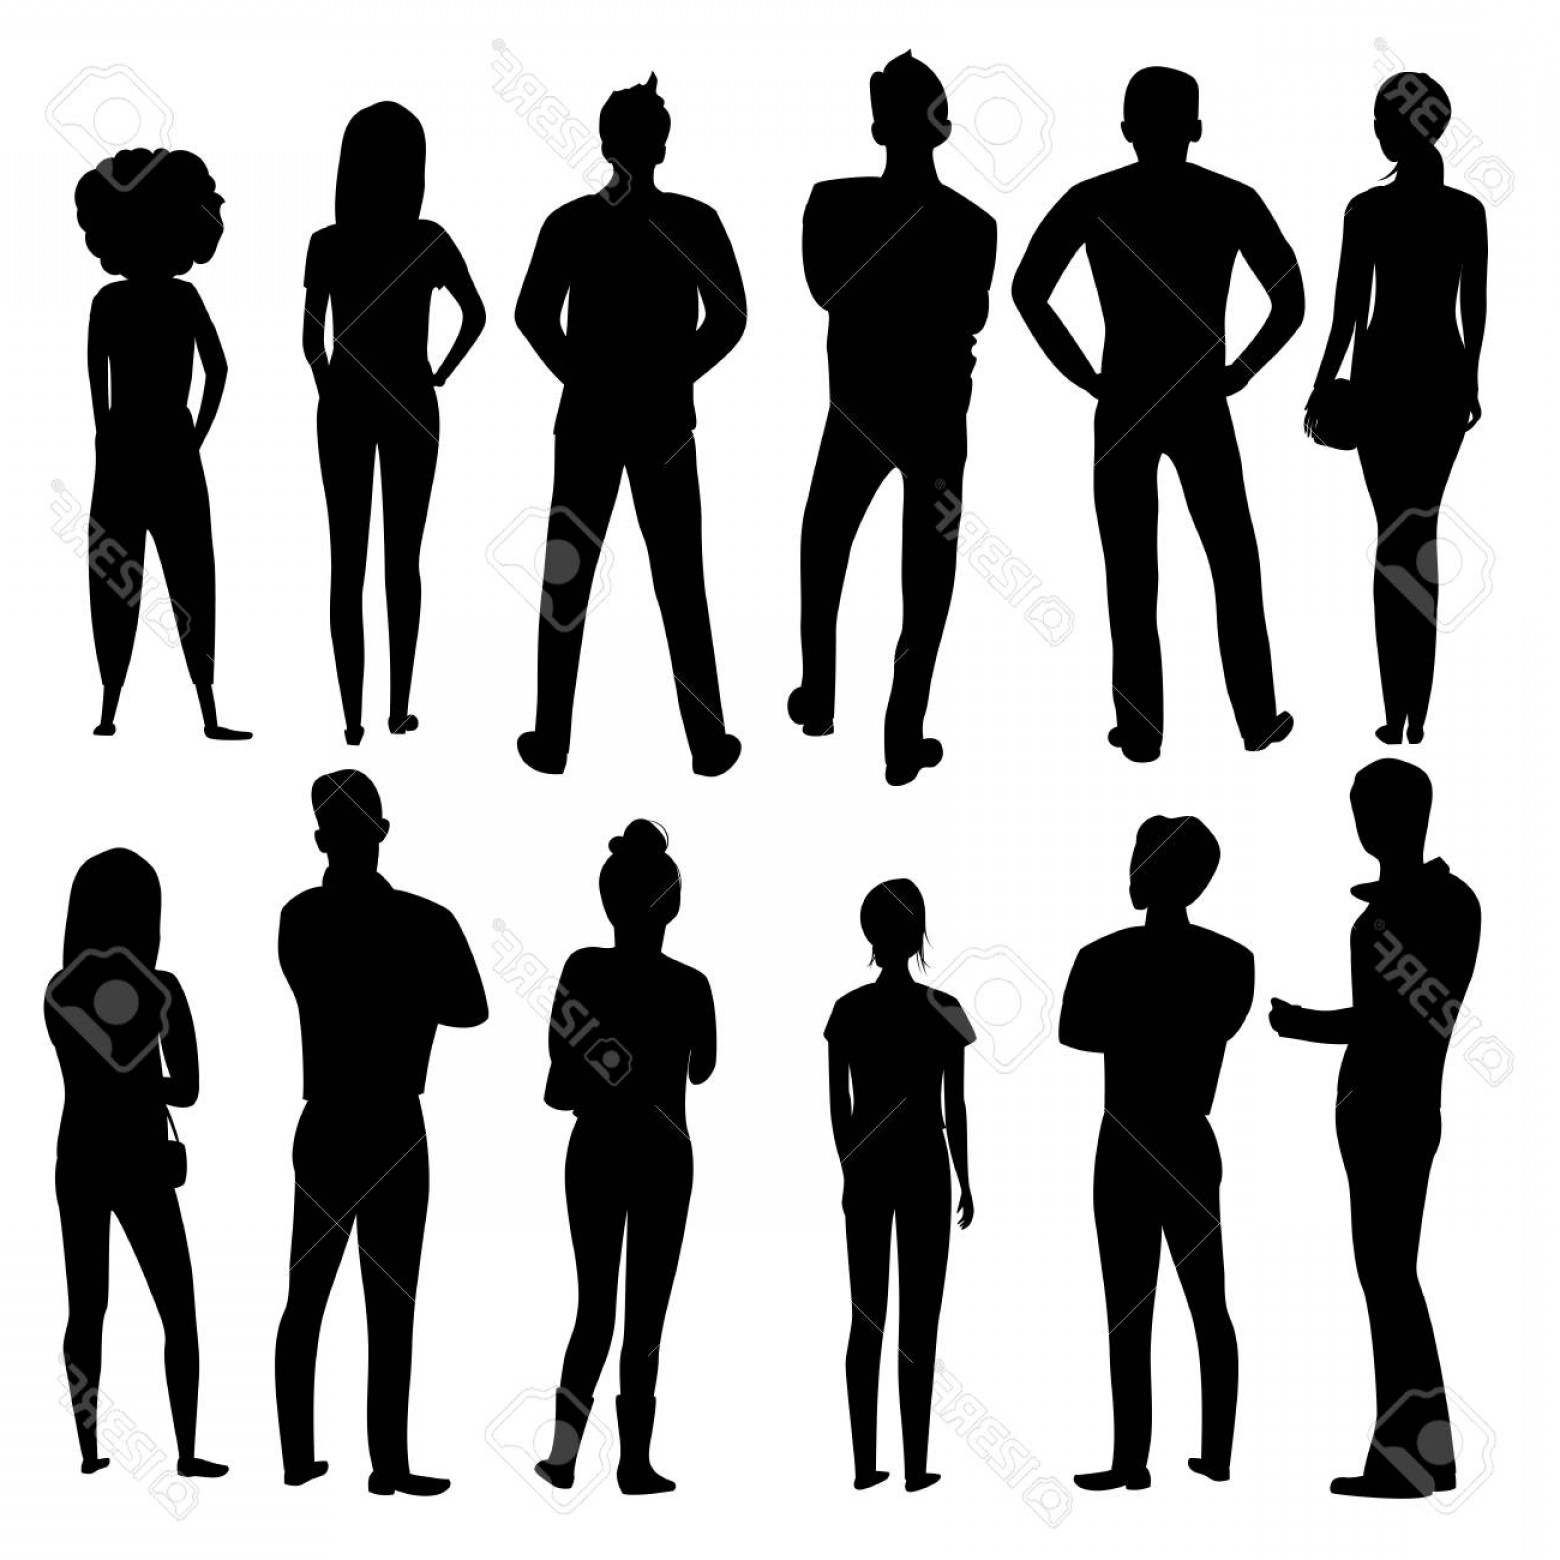 People Standing Vector: Photostock Vector People Stand Back Vector Silhouette Of A Group Of People Set